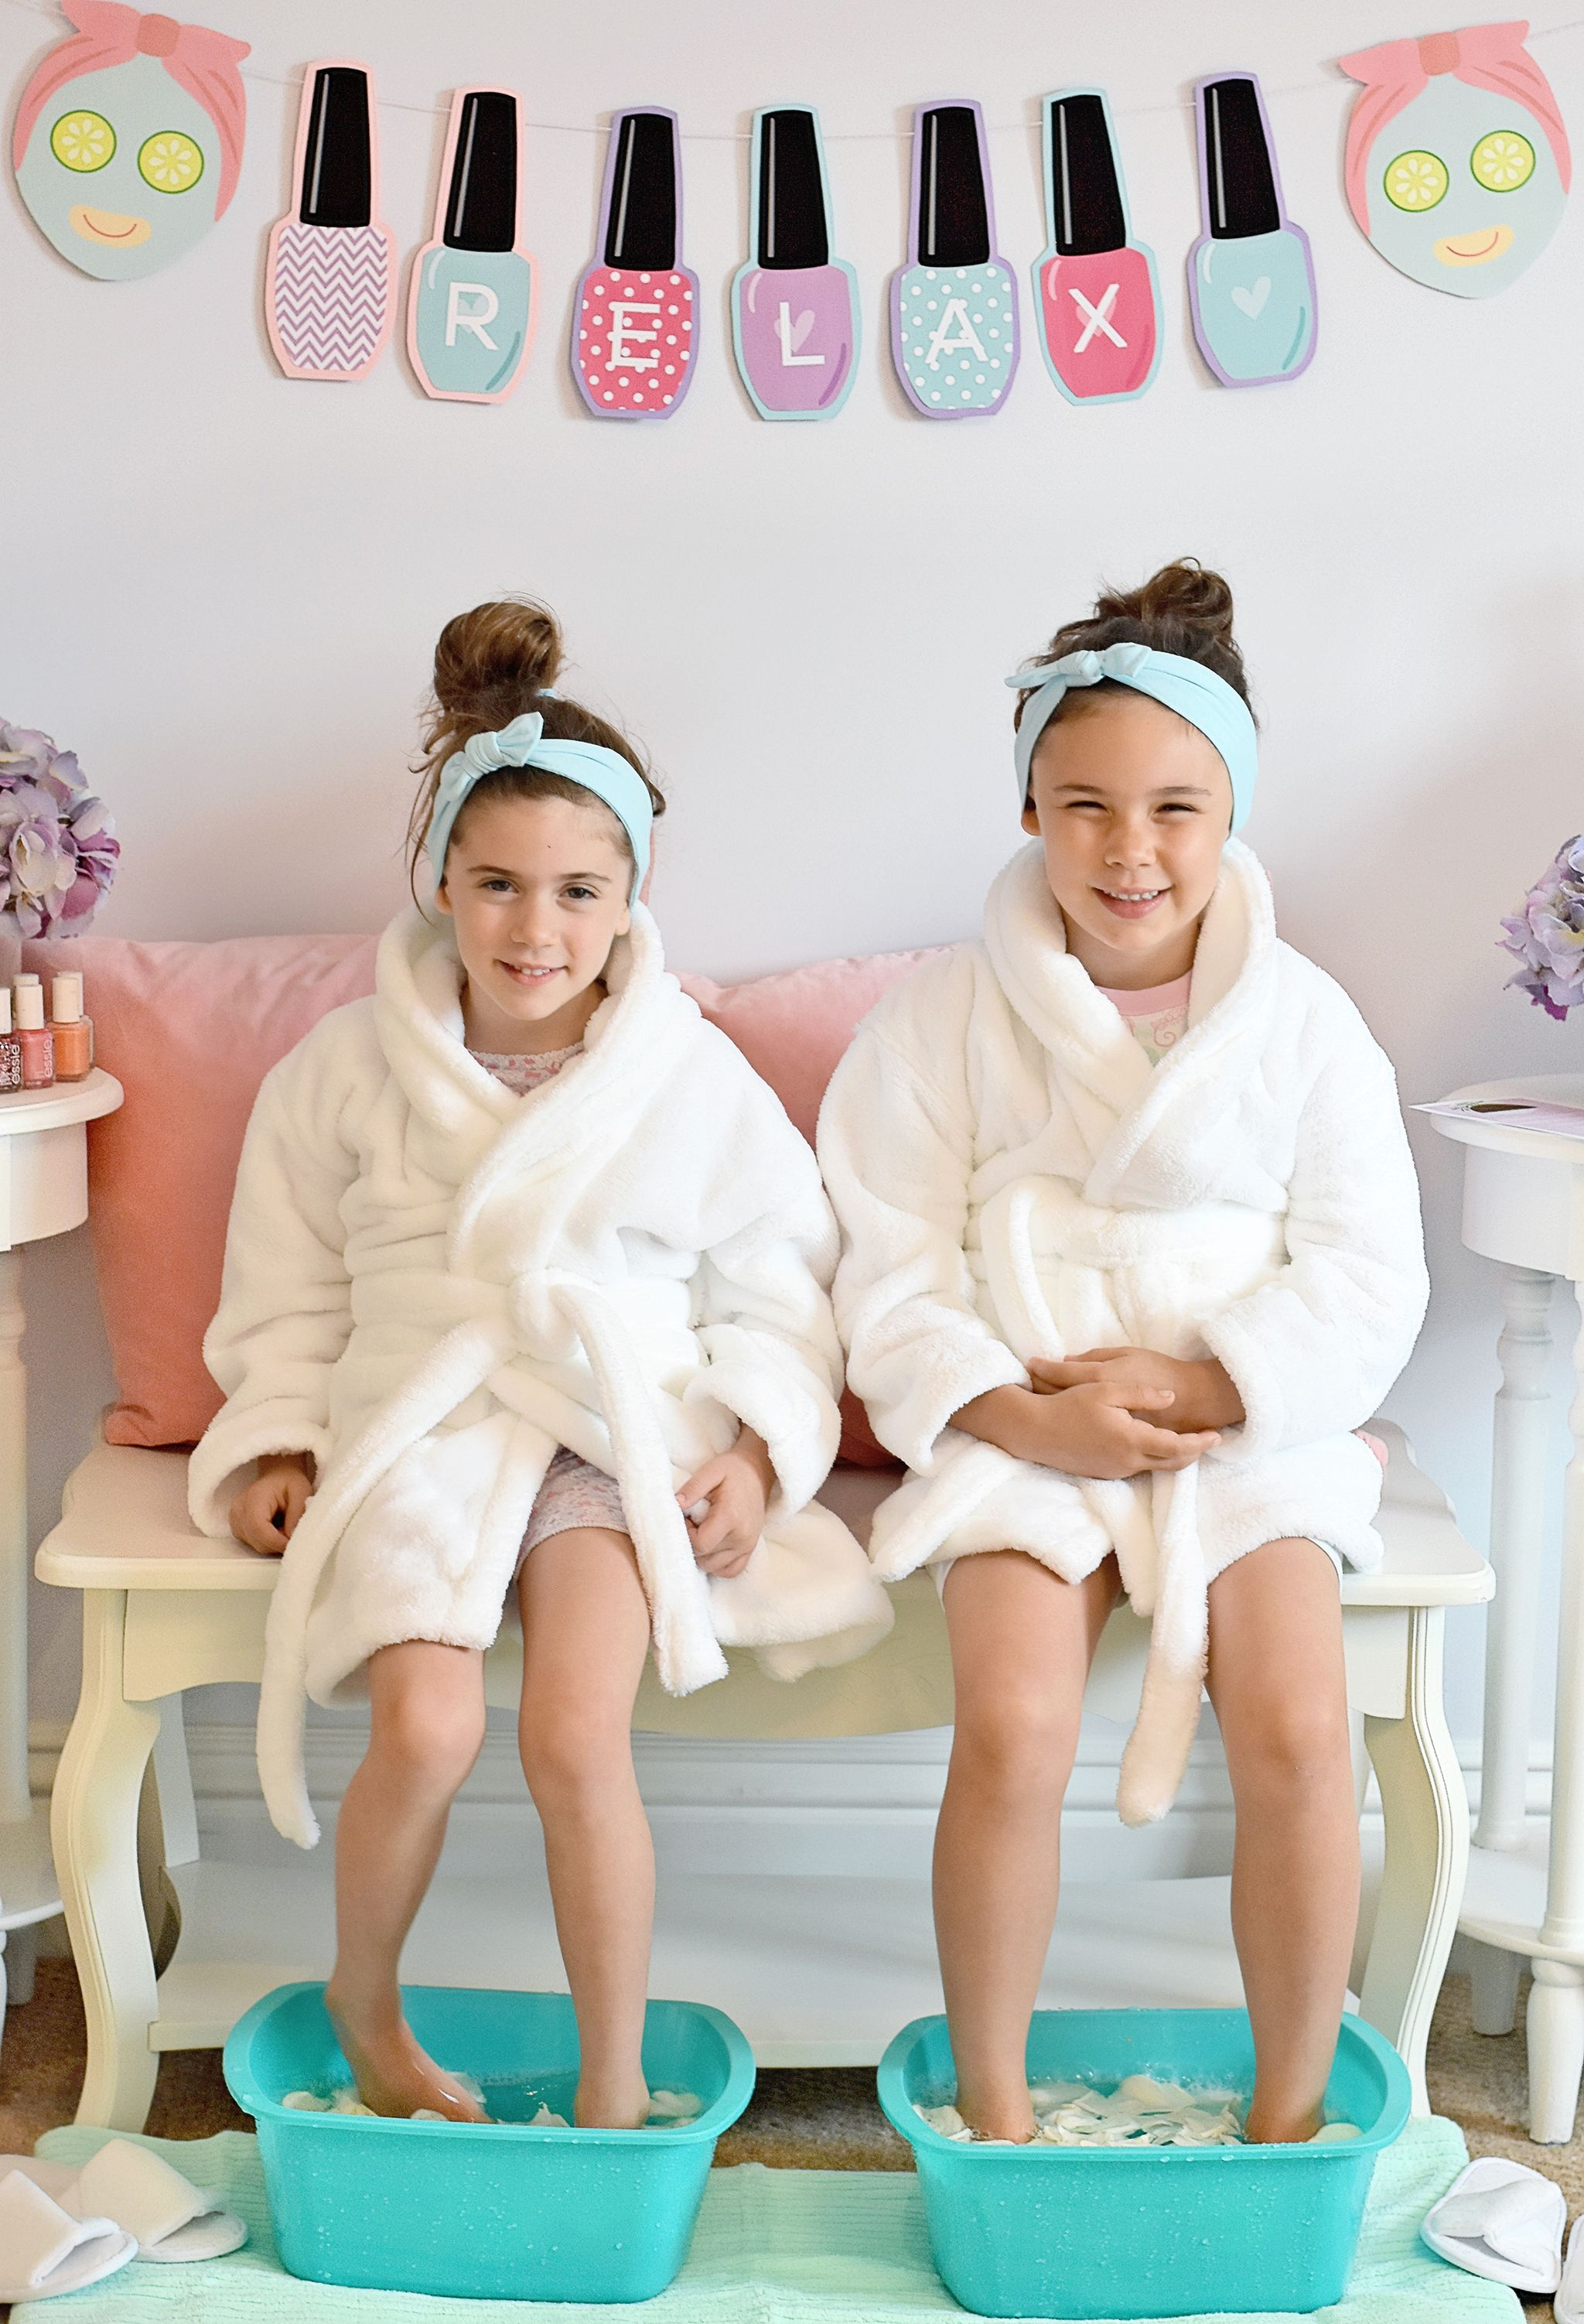 Child Pedicure Chair Walmart Beach Chairs How To Host A Spa Day For Kids Finds Mom Party